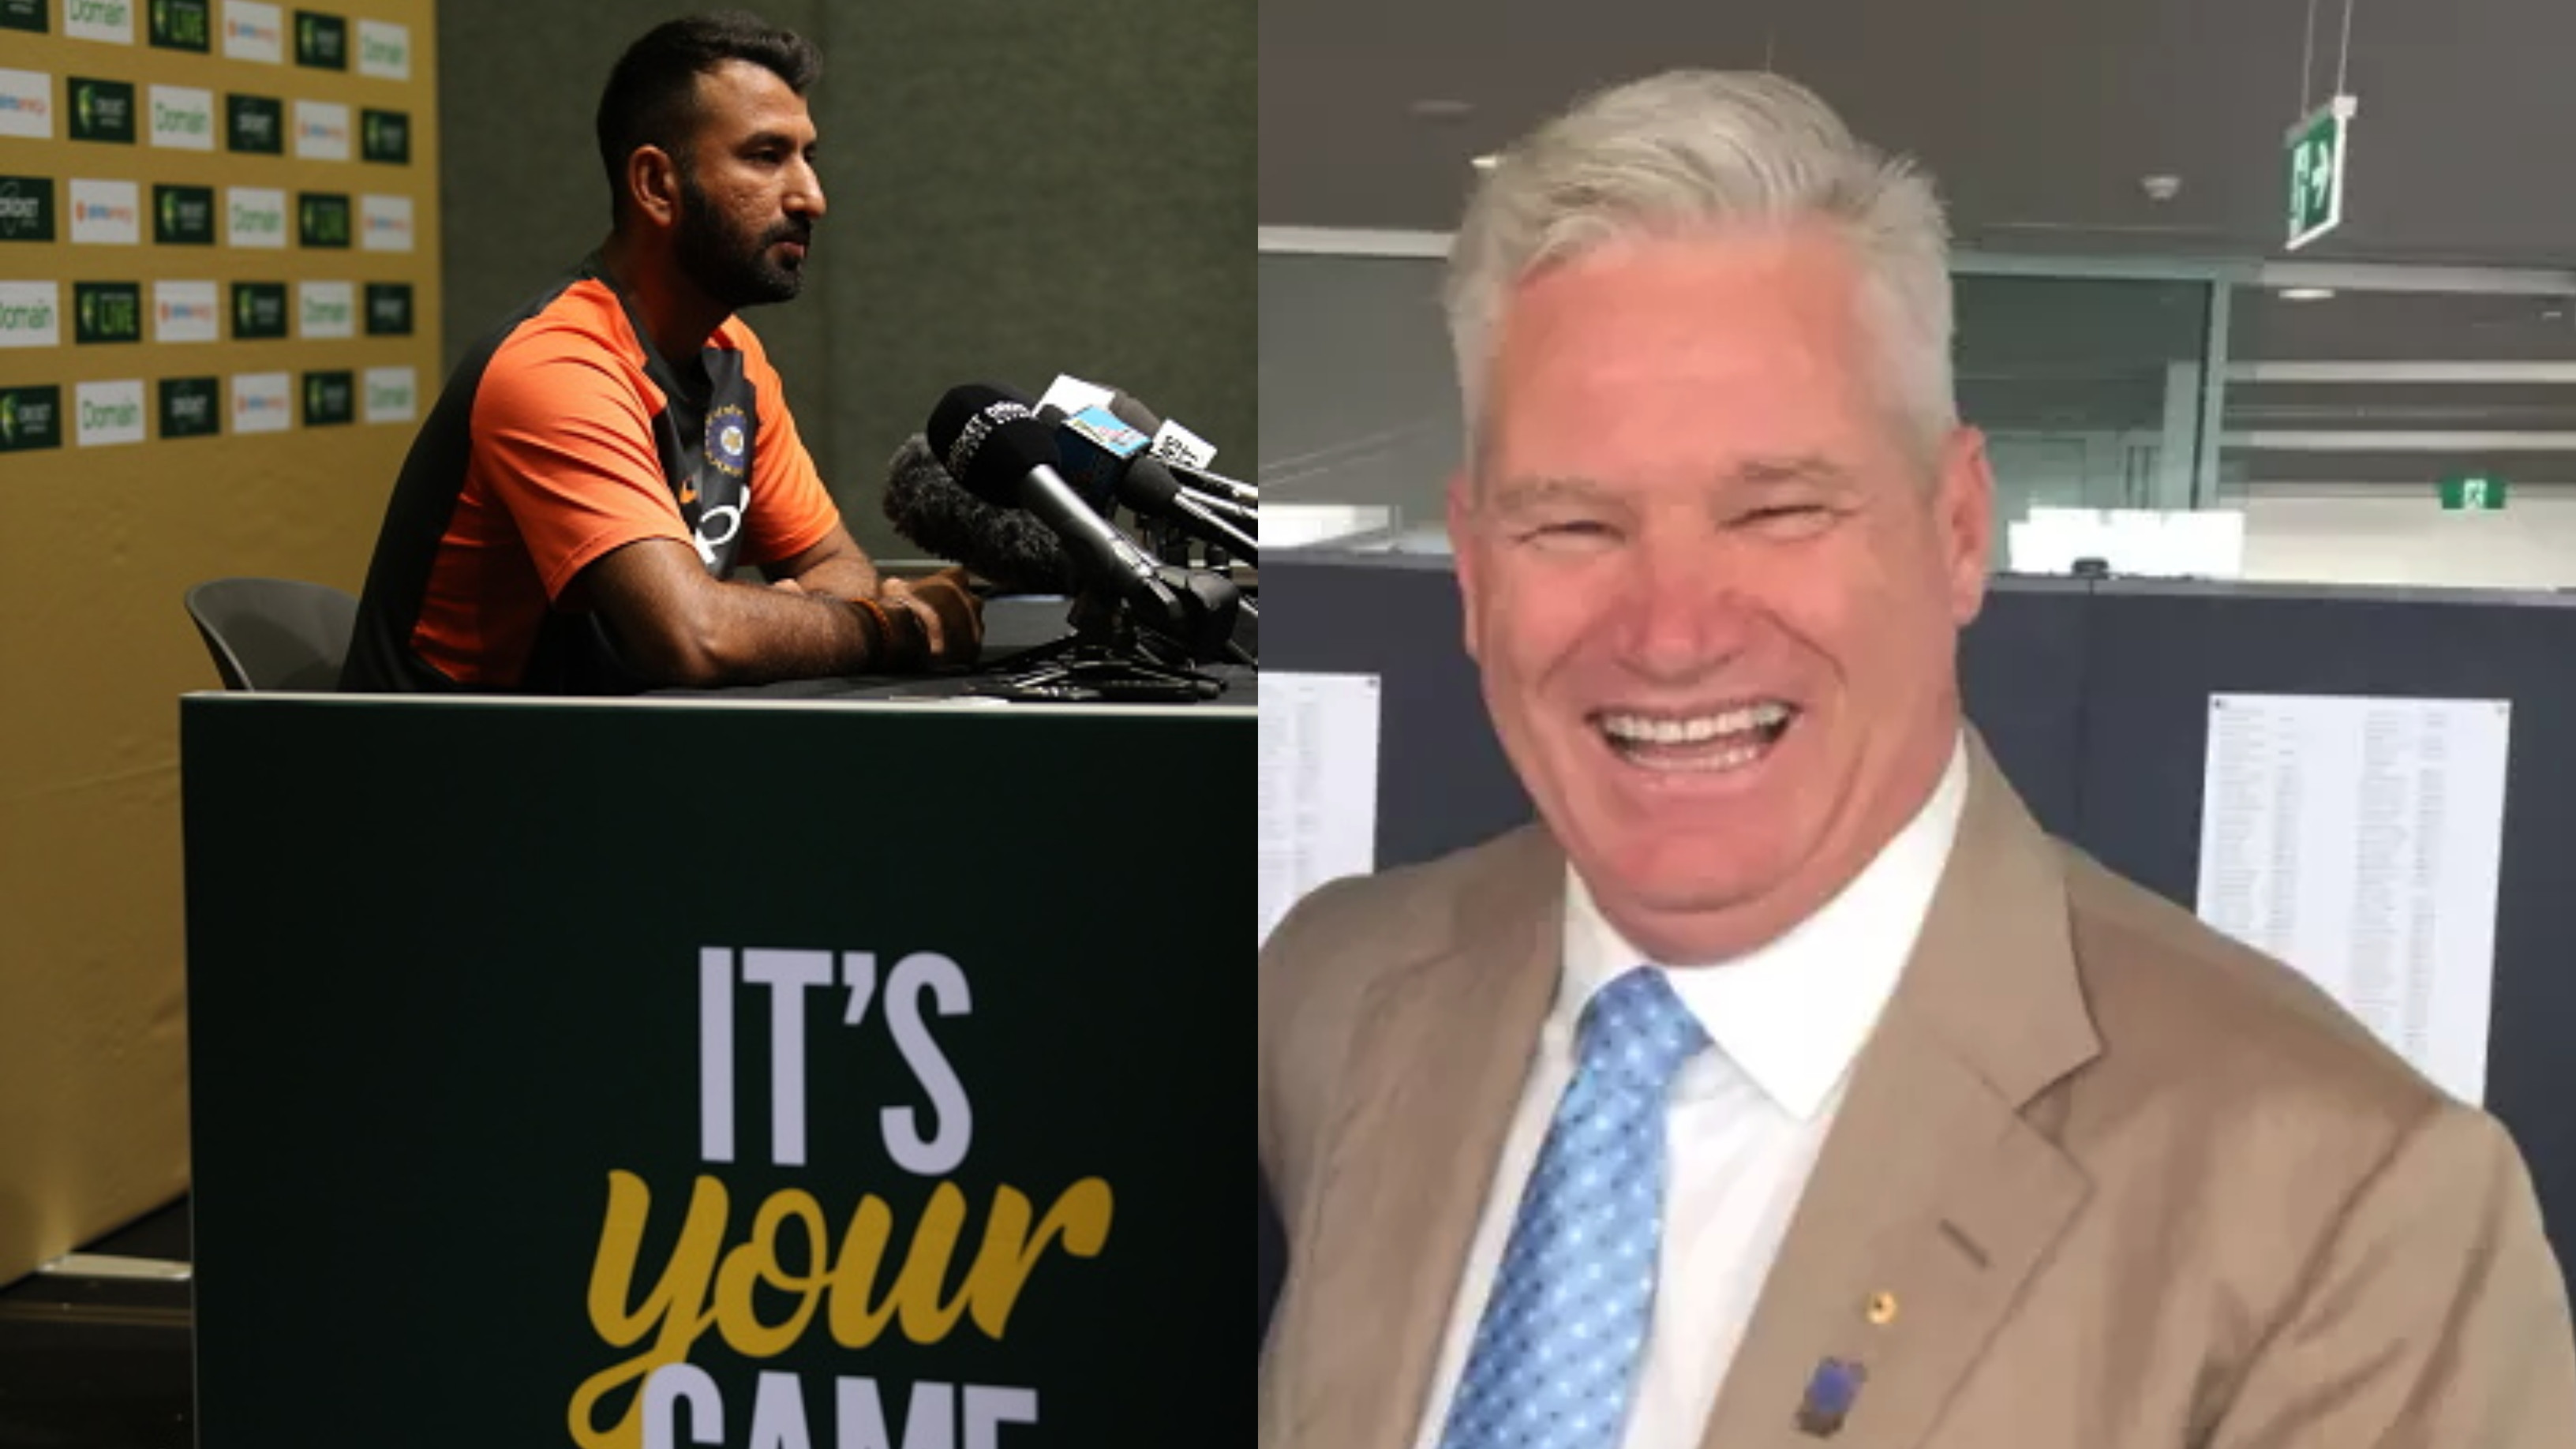 AUS v IND 2018-19: Dean Jones takes a dig at Cheteshwar Pujara's comment on India's bowling in practice game